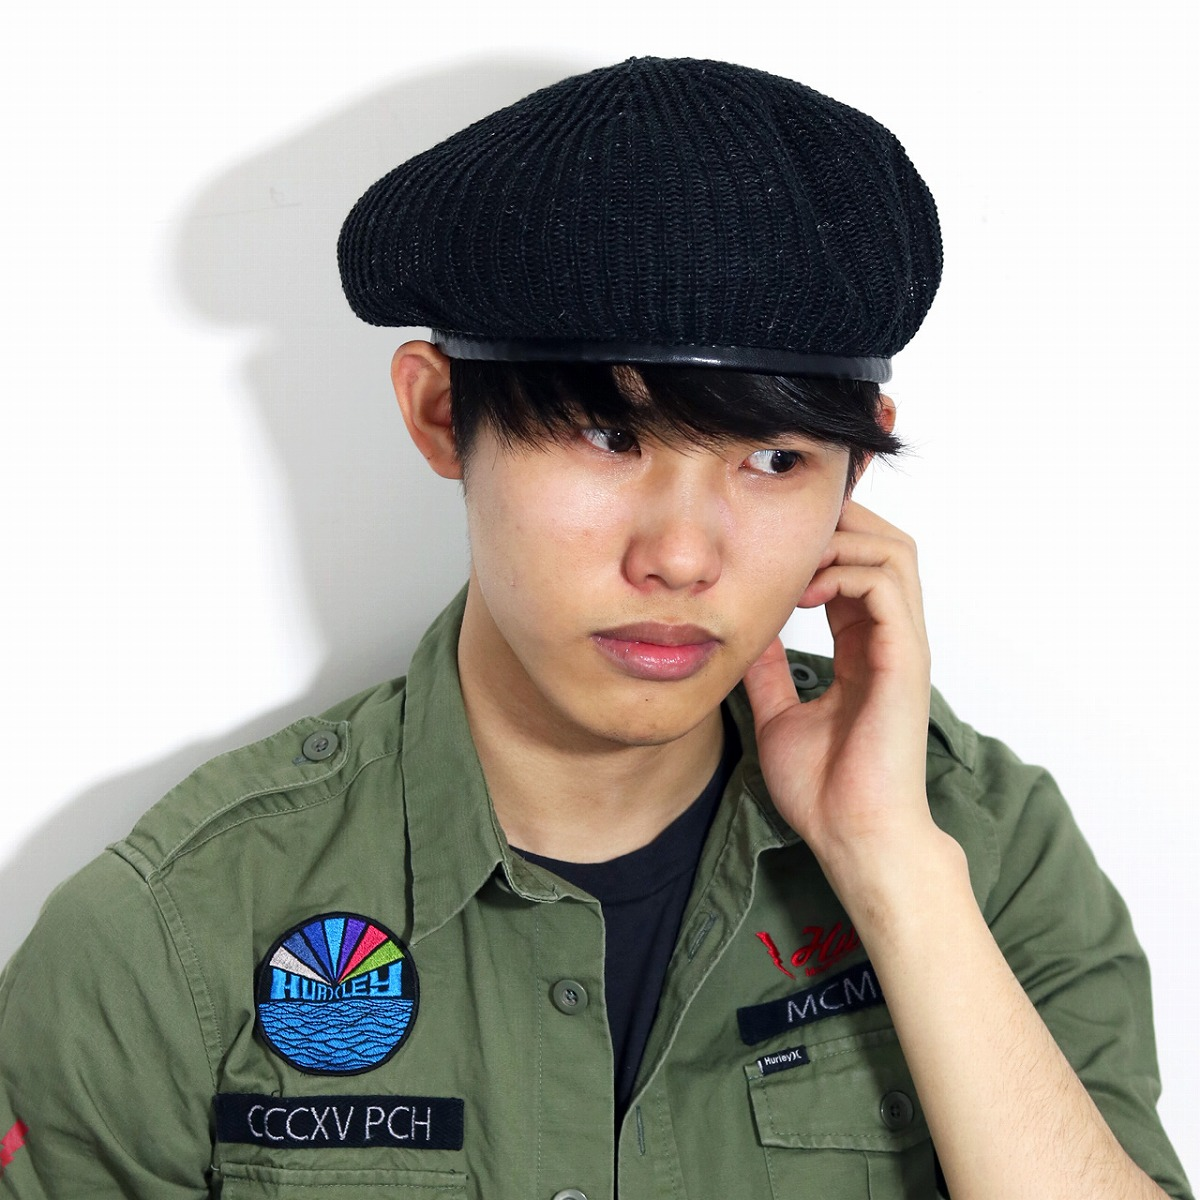 e9b4ad13f00 ELEHELM HAT STORE  Beret summer knit hemp rib army beret hat Lady s men  beret unisex 57.5cm army military beret Monty beret black black  beret   Father s Day ...